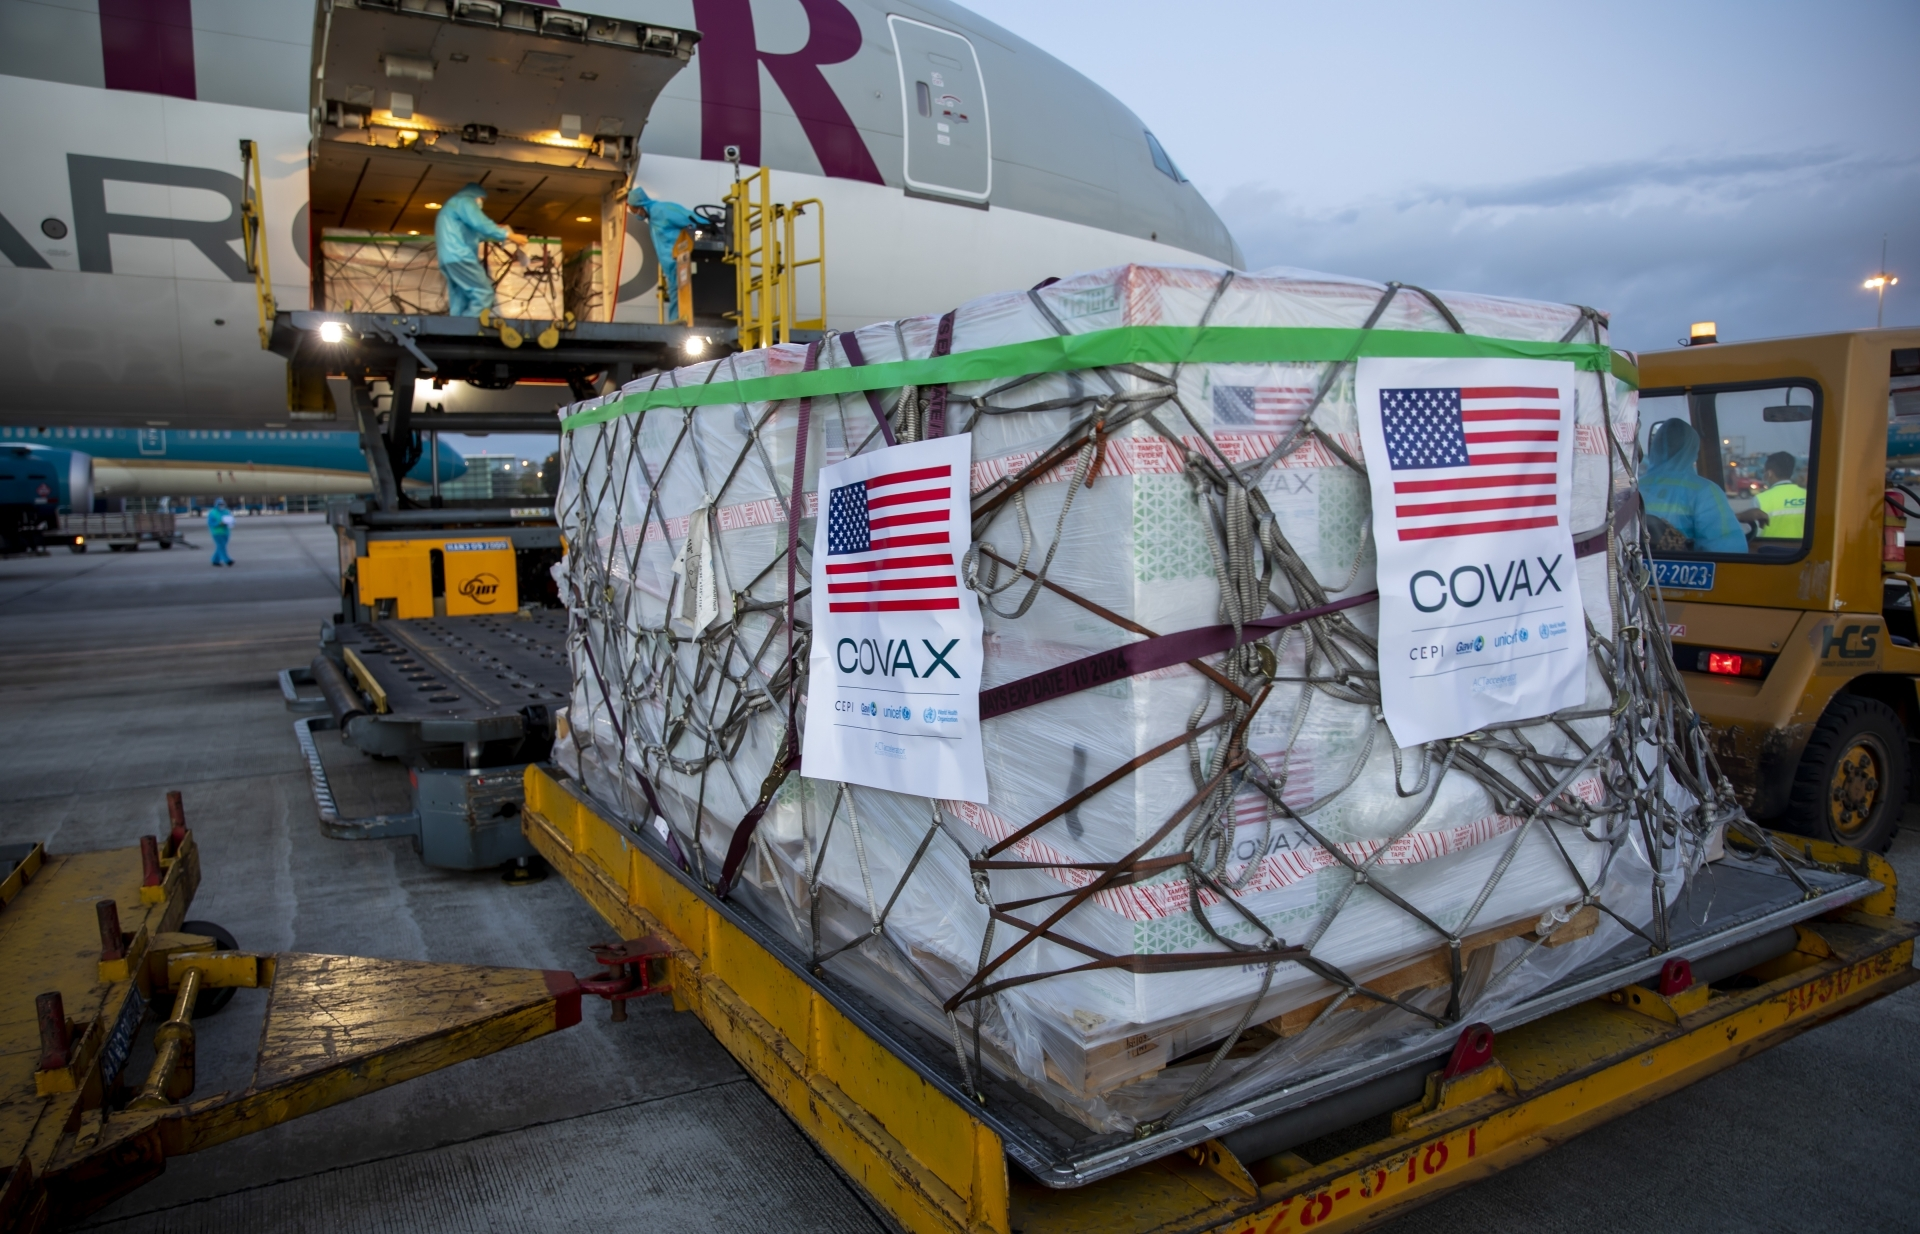 Over two million doses of Moderna COVID-19 vaccines arrive in Vietnam